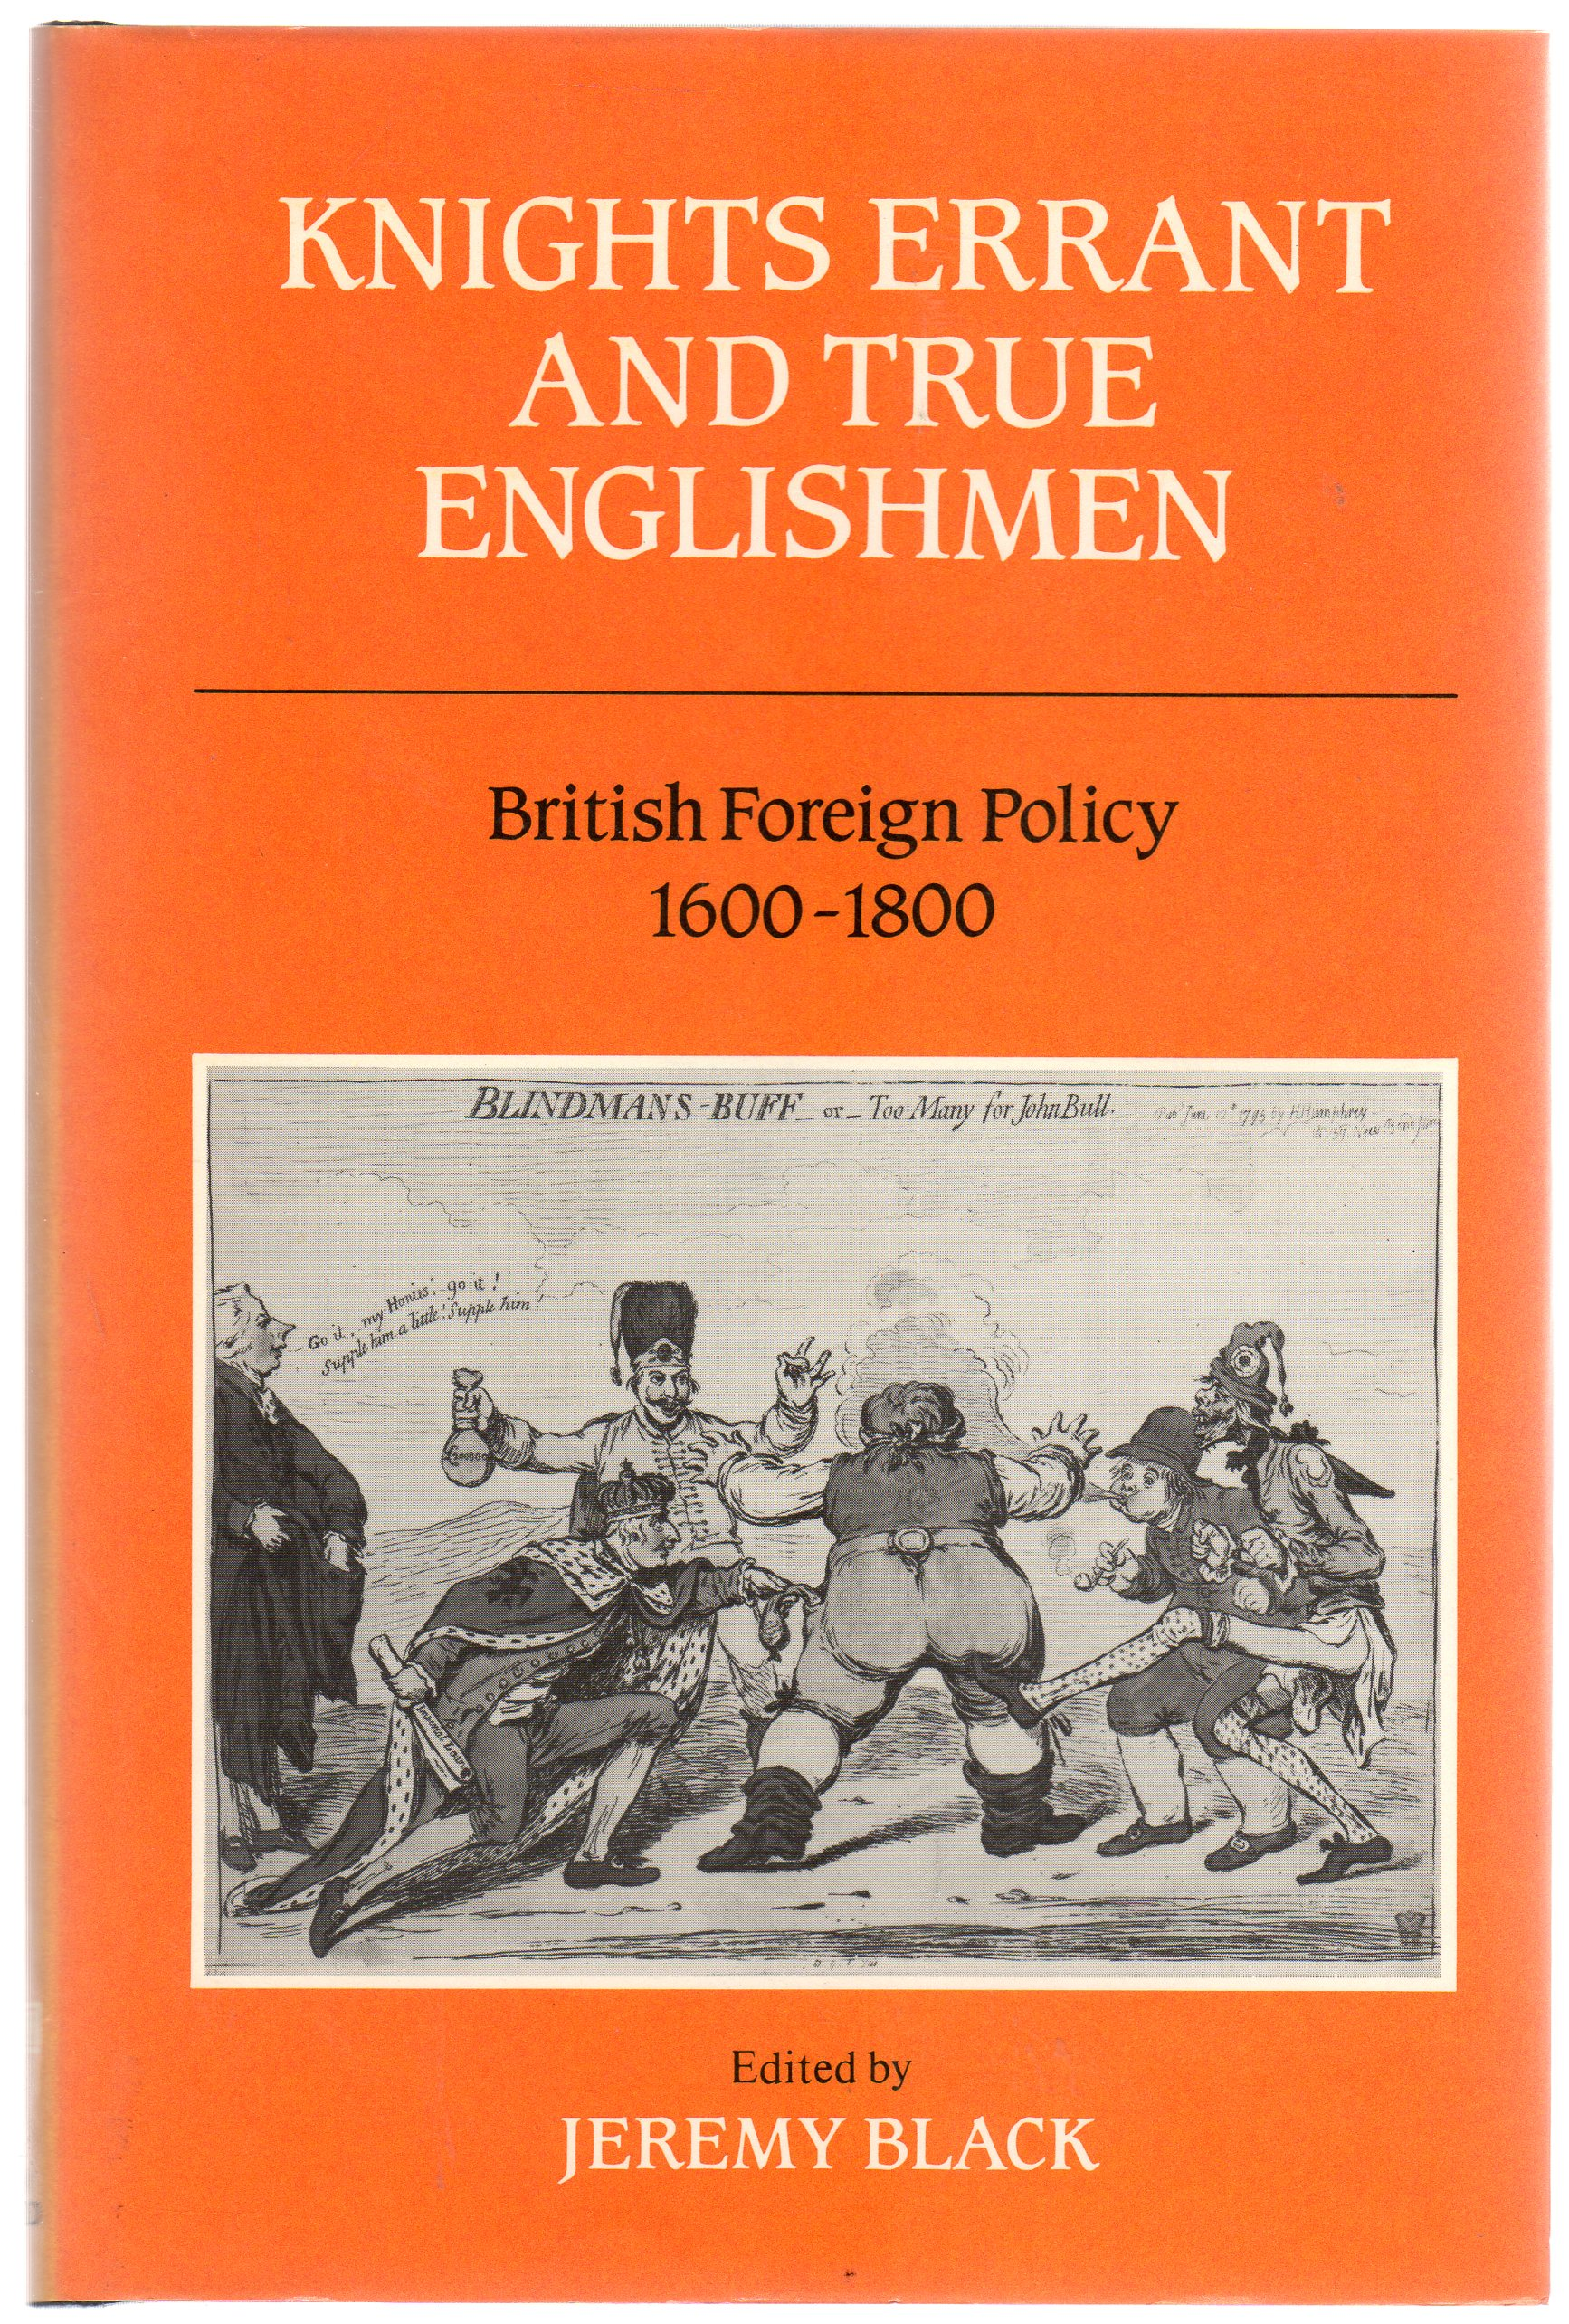 Image for Knights Errant and True Englishmen: British Foreign Policy, 1600-1800